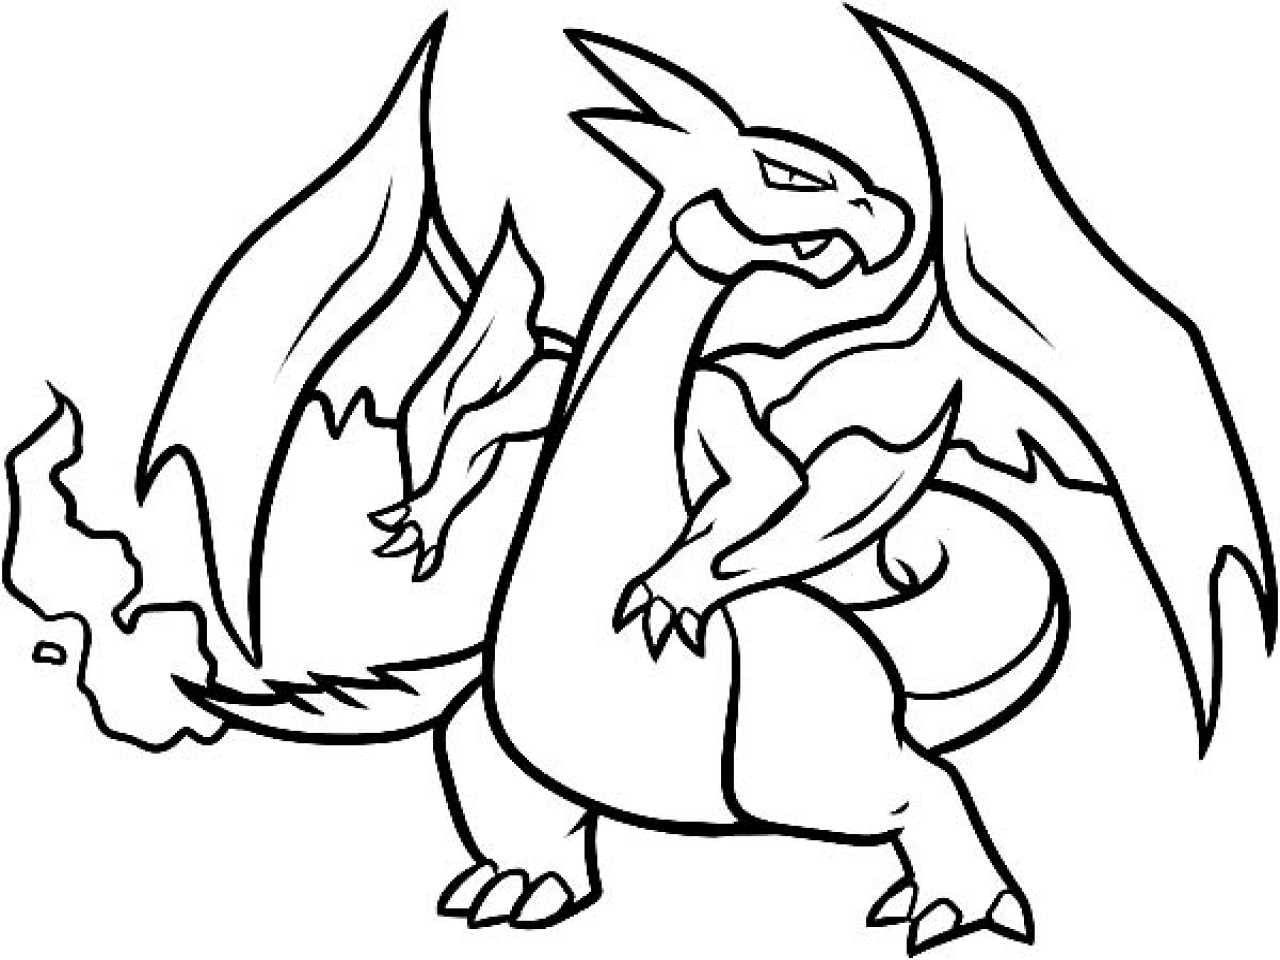 charizard coloring pages to print charizard coloring pages to download and print for free print charizard to coloring pages